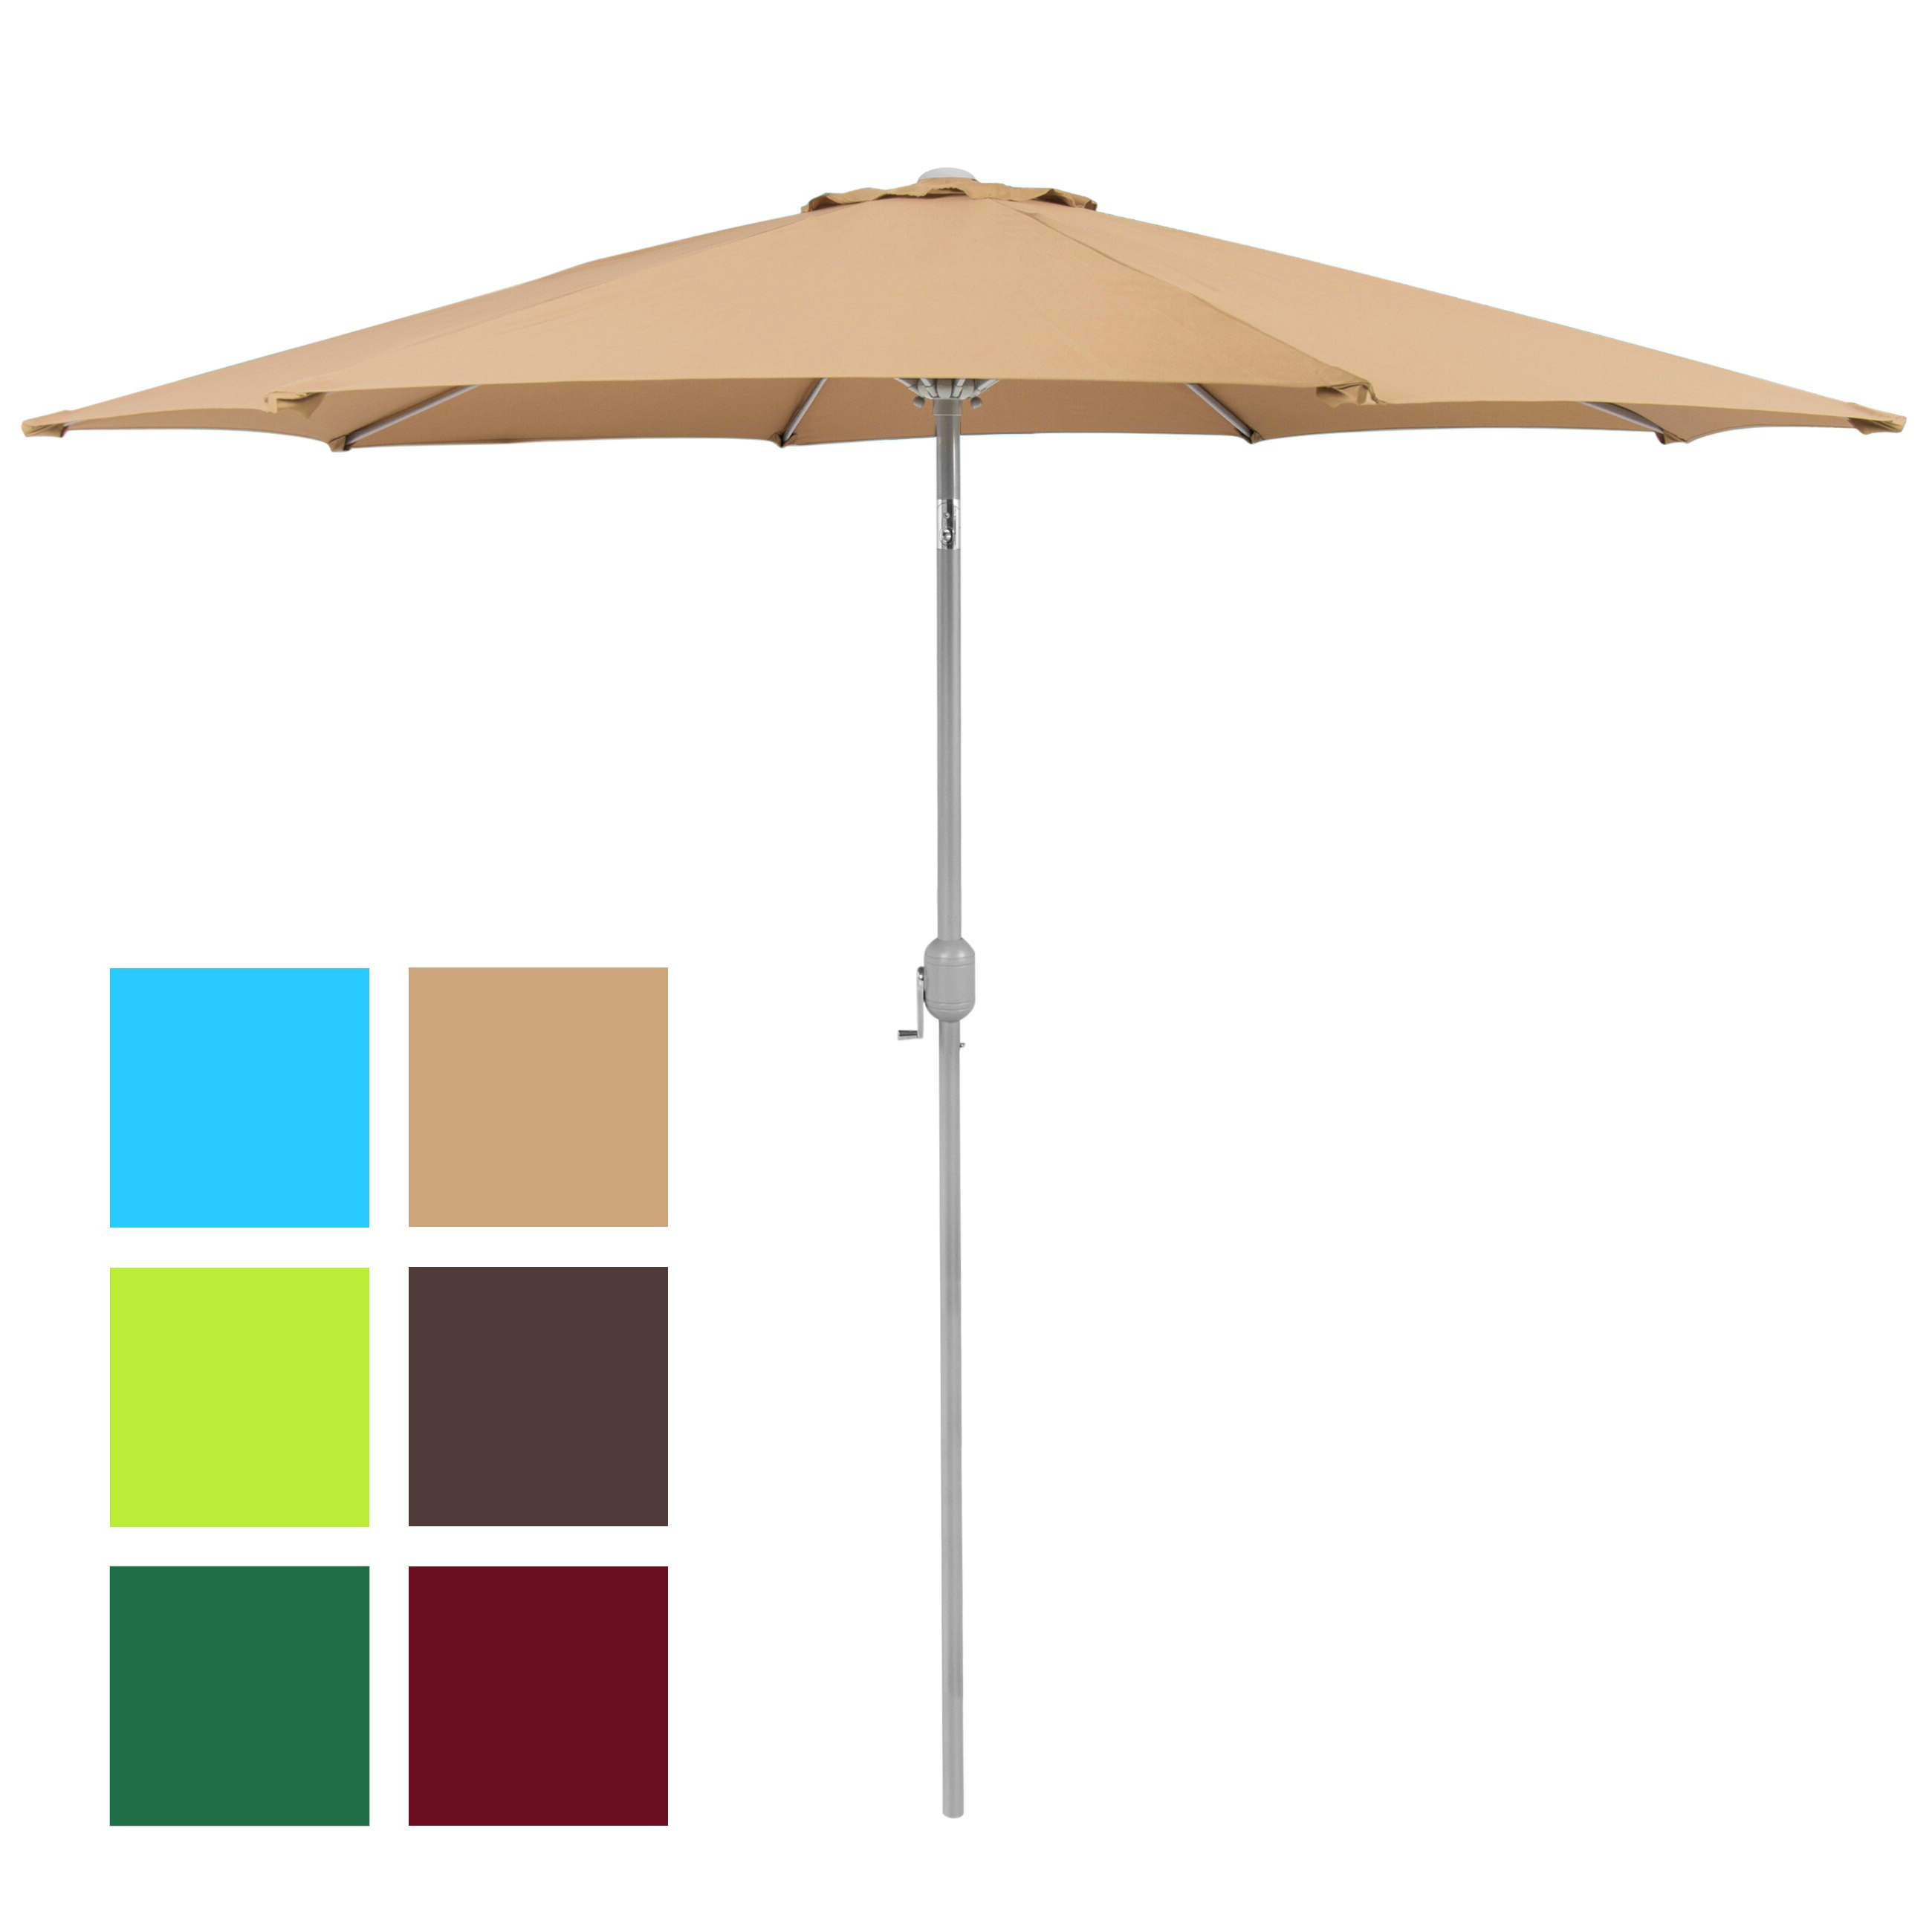 Market Umbrellas Regarding Best And Newest Patio Umbrella 9' Aluminum Patio Market Umbrella Tilt W/ Crank Outdoor Tan (View 15 of 20)